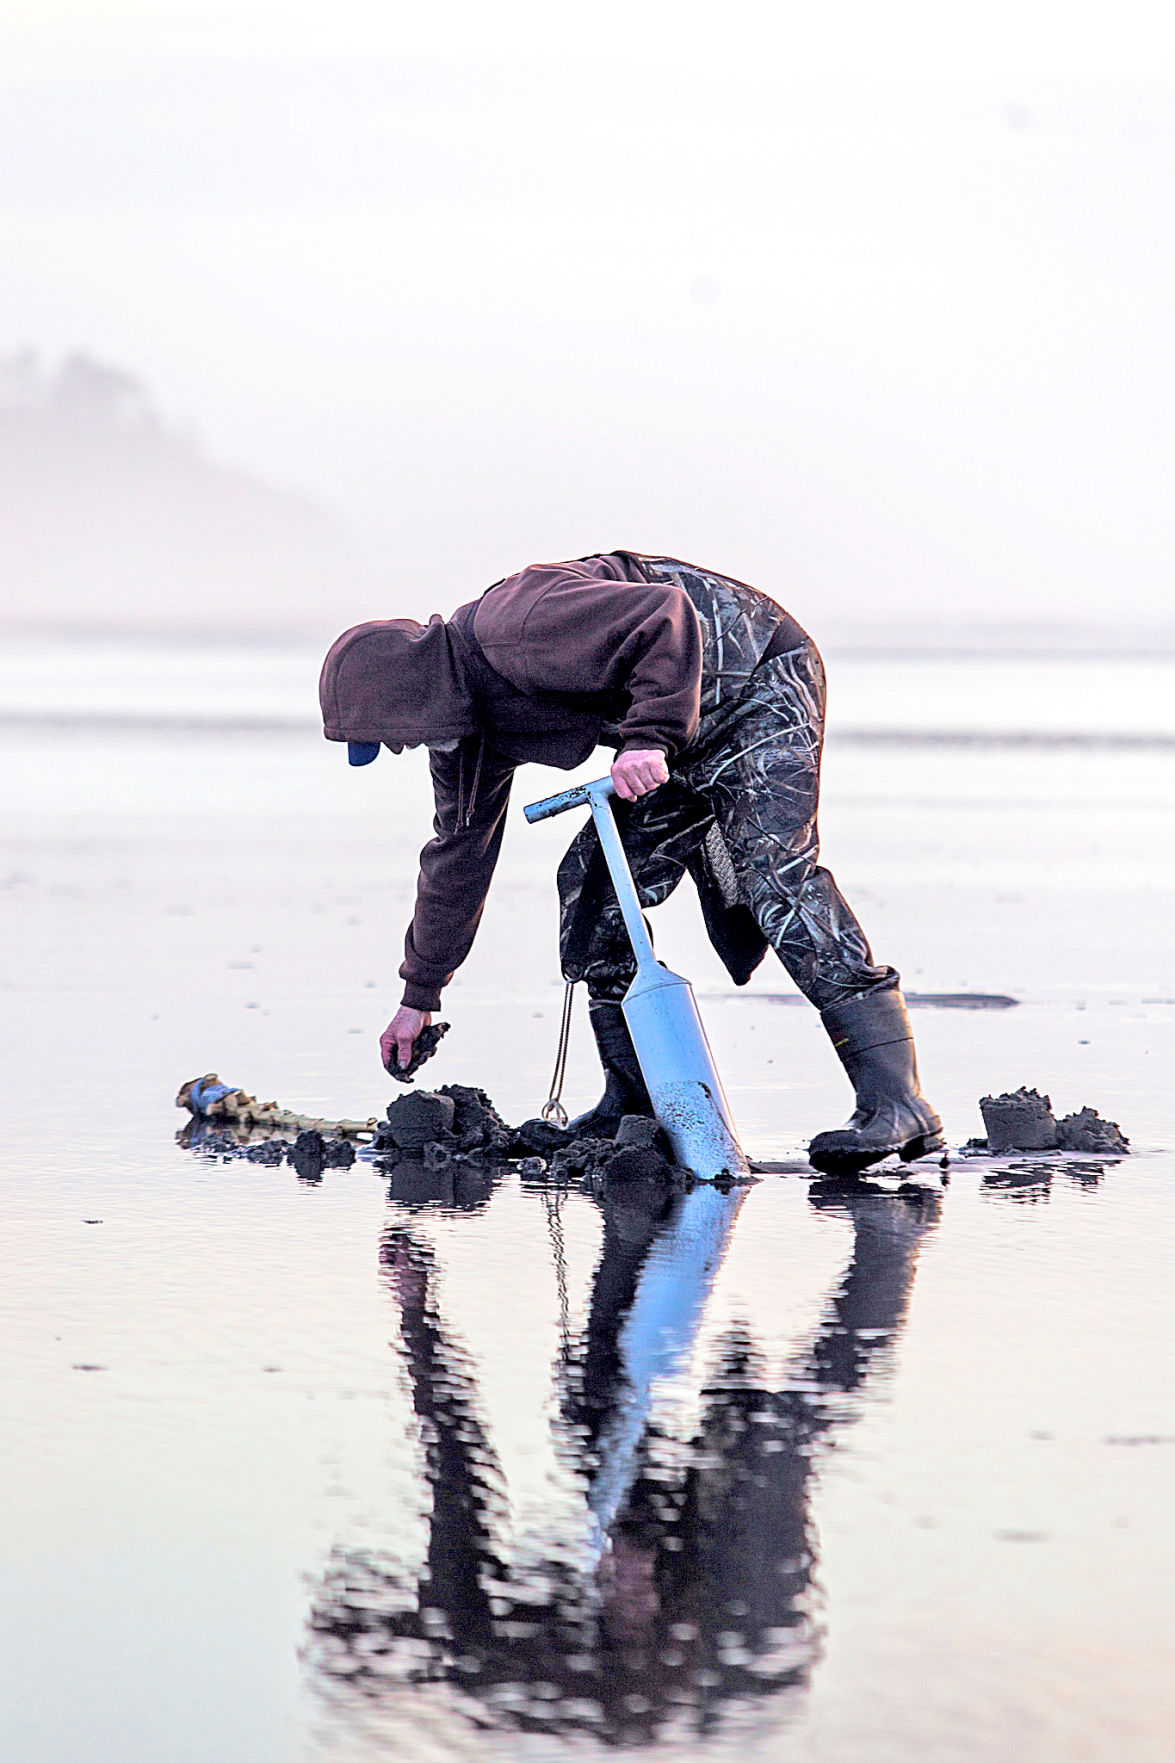 1911207_co_news_digger collects clam.jpg